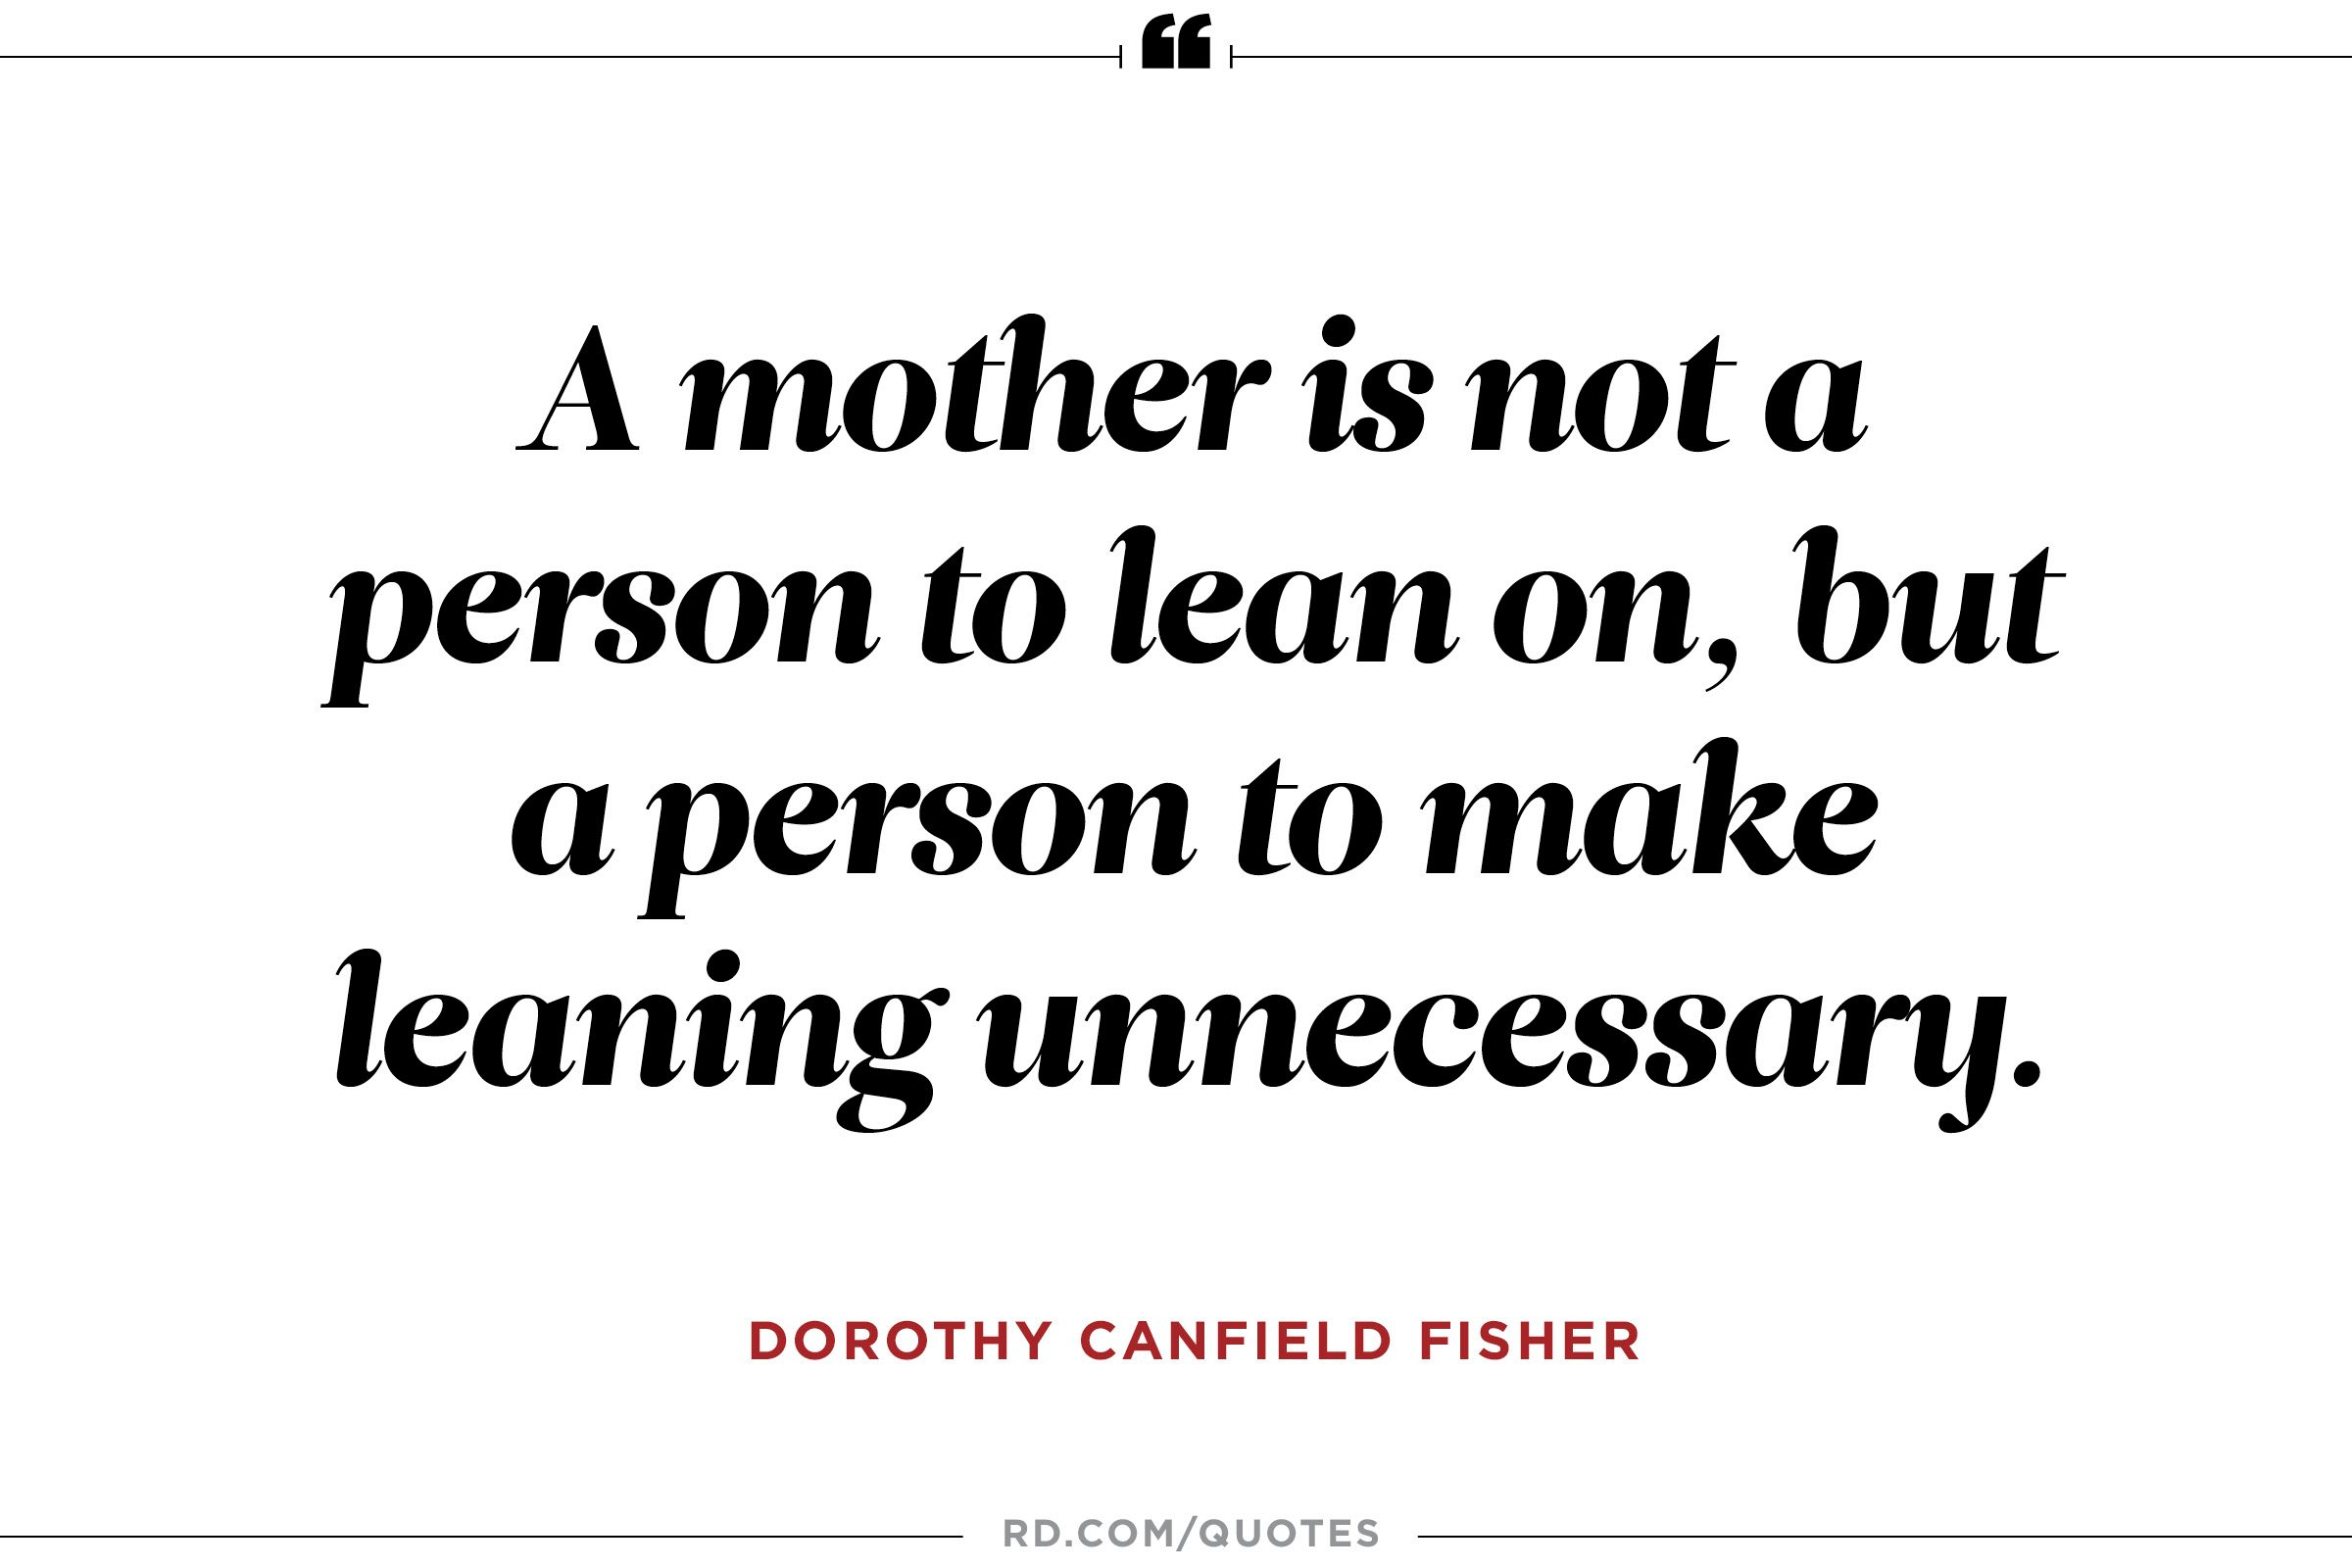 11 Quotes About Mothers That'll Make You Call Yours | Reader's Digest